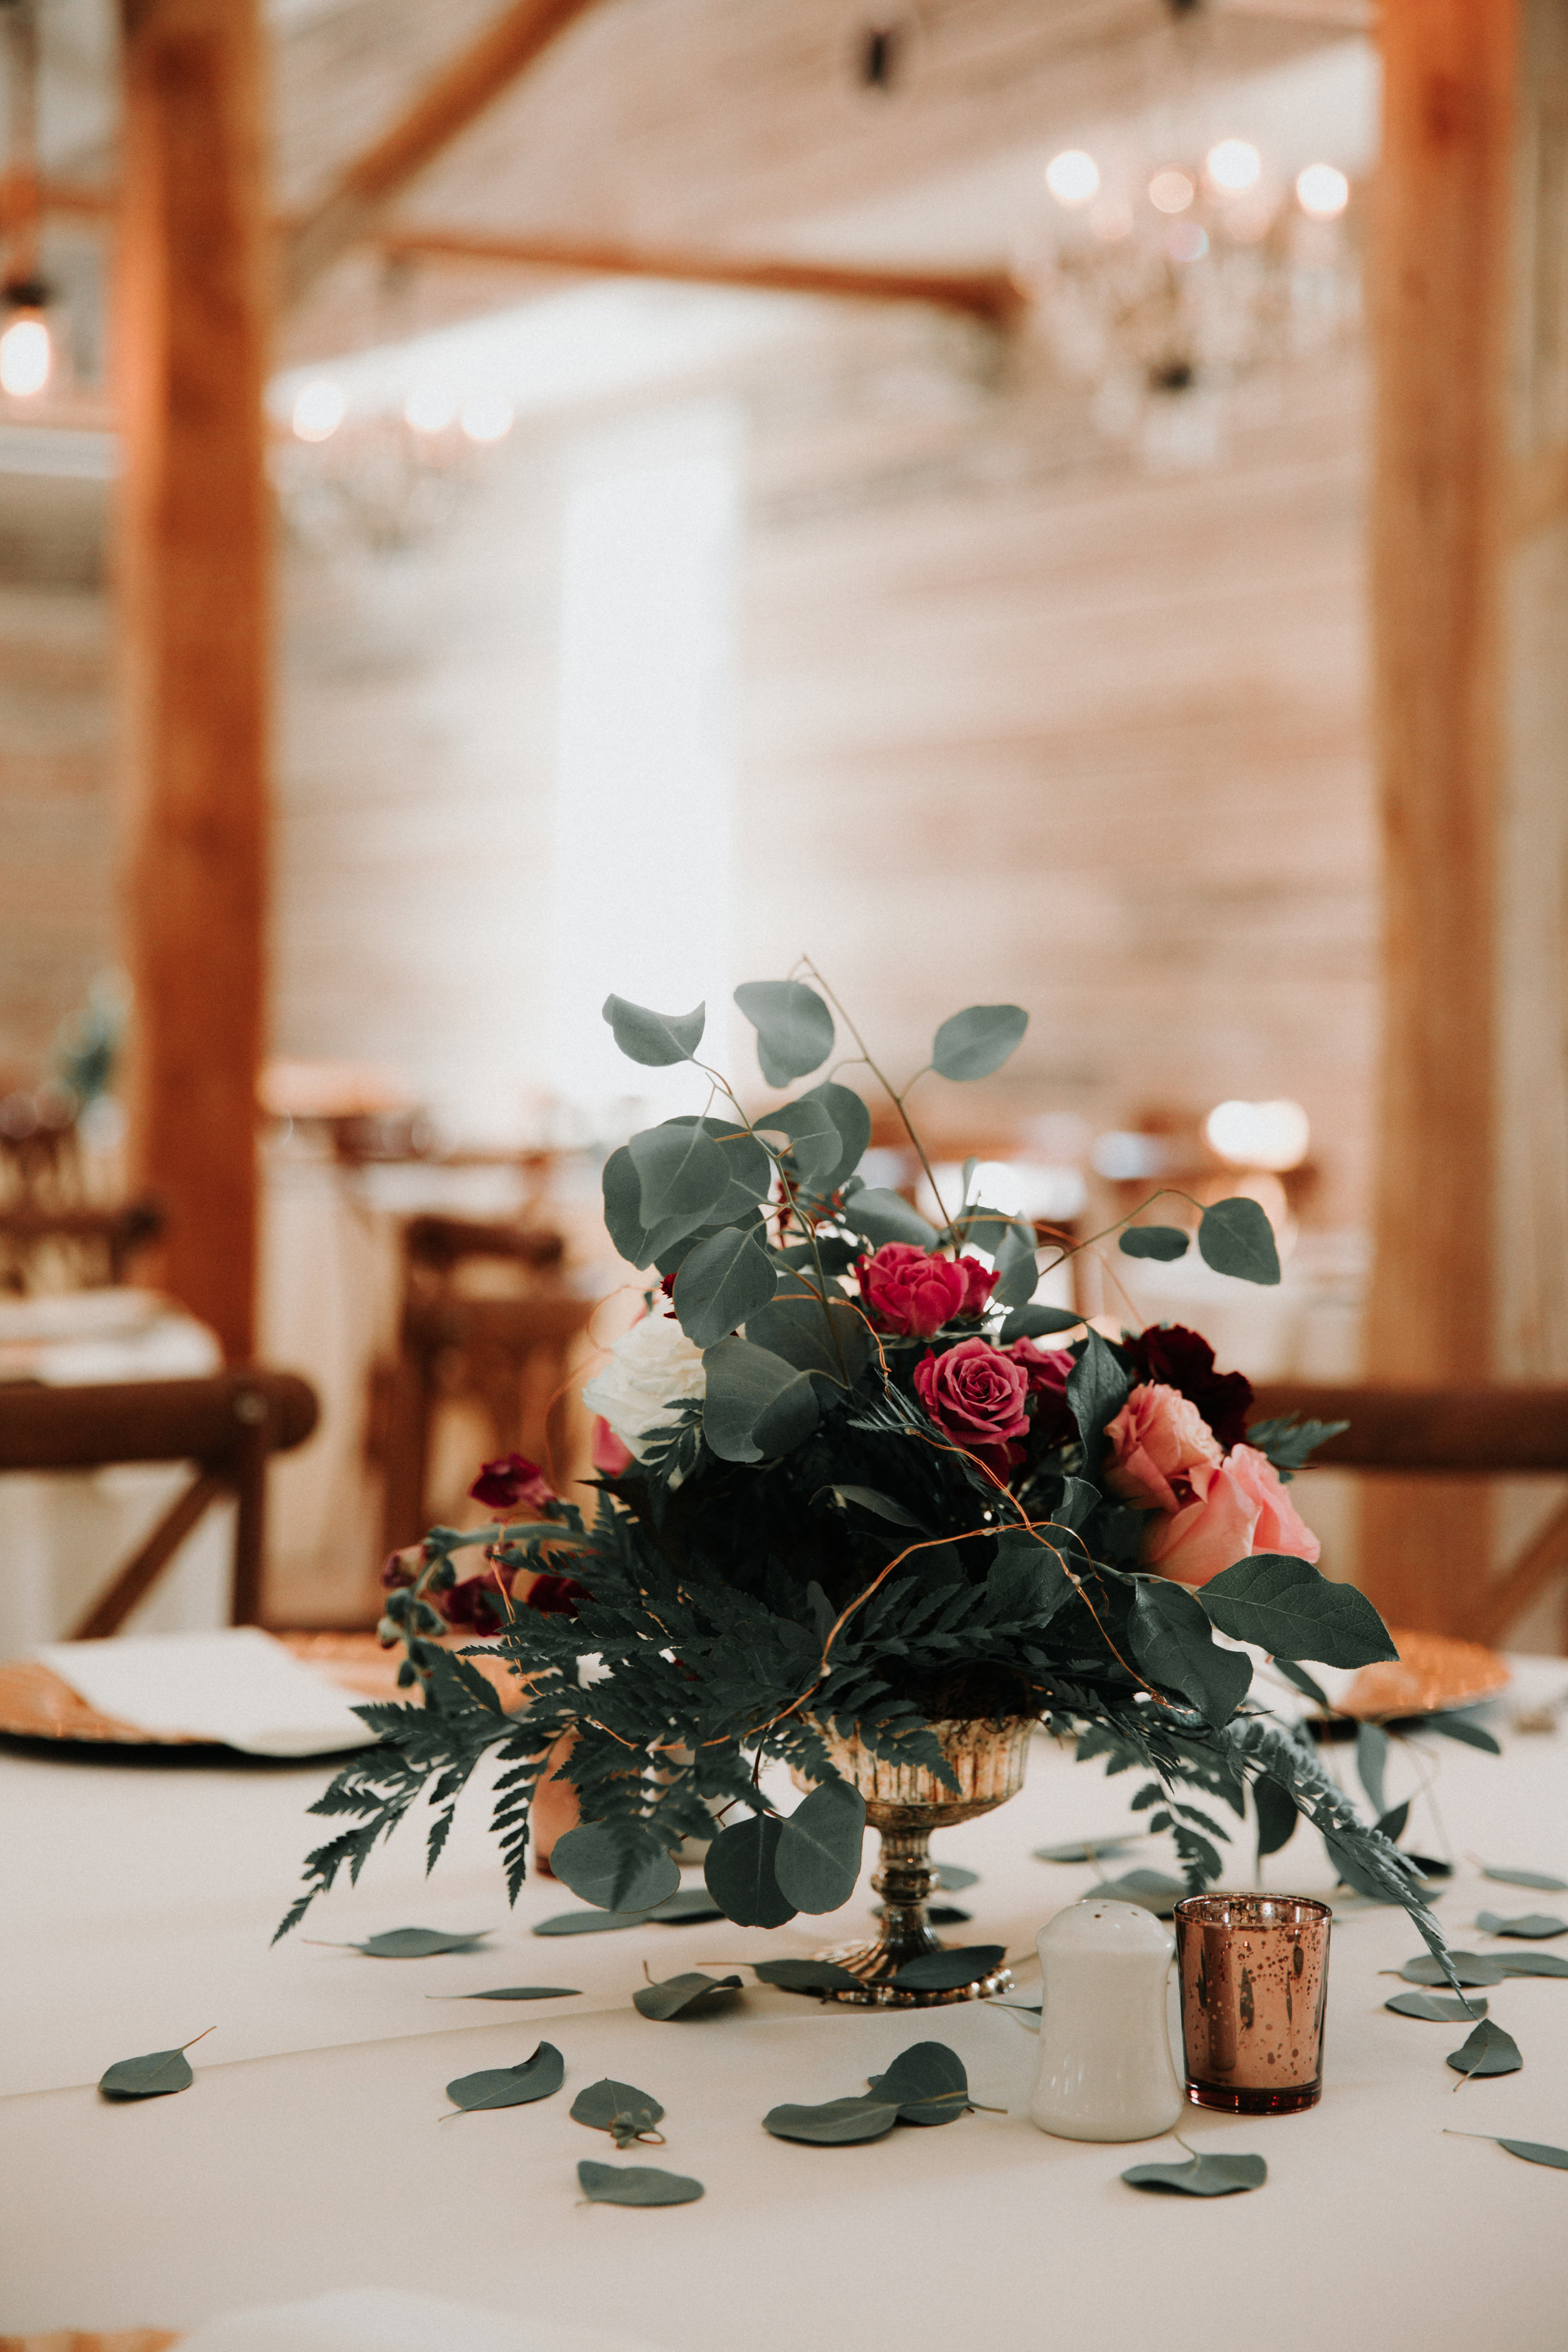 Simple Floral Wedding Centerpieces - Athens, Tennesee Barn Wedding -- The Overwhelmed Bride Wedding Blog